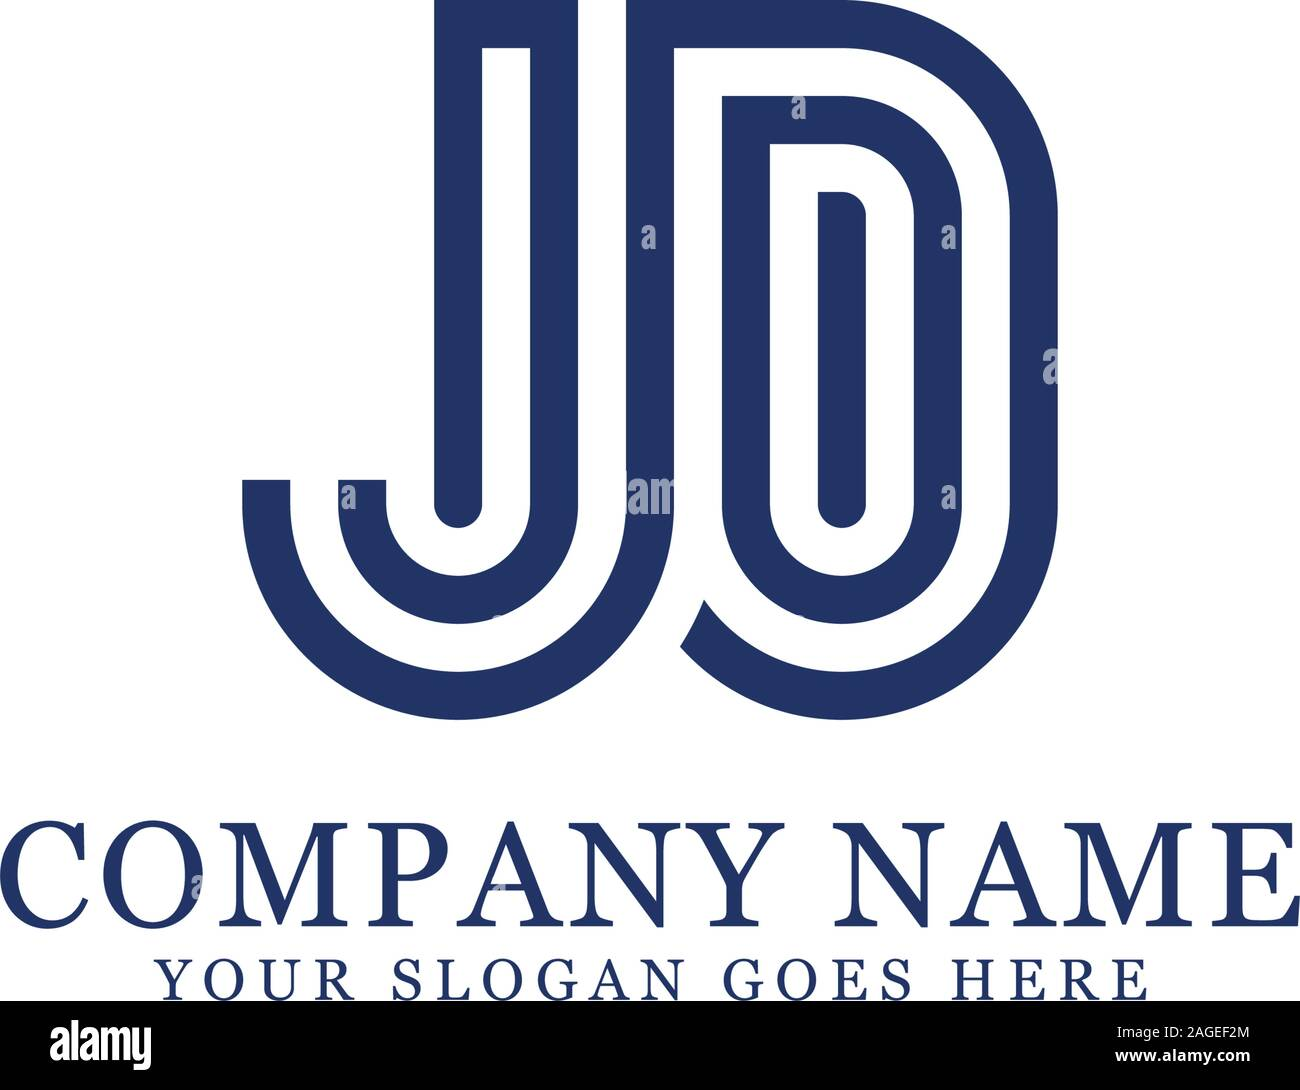 jd logo designs monogram logo vector stock vector image art alamy https www alamy com jd logo designs monogram logo vector image337150652 html